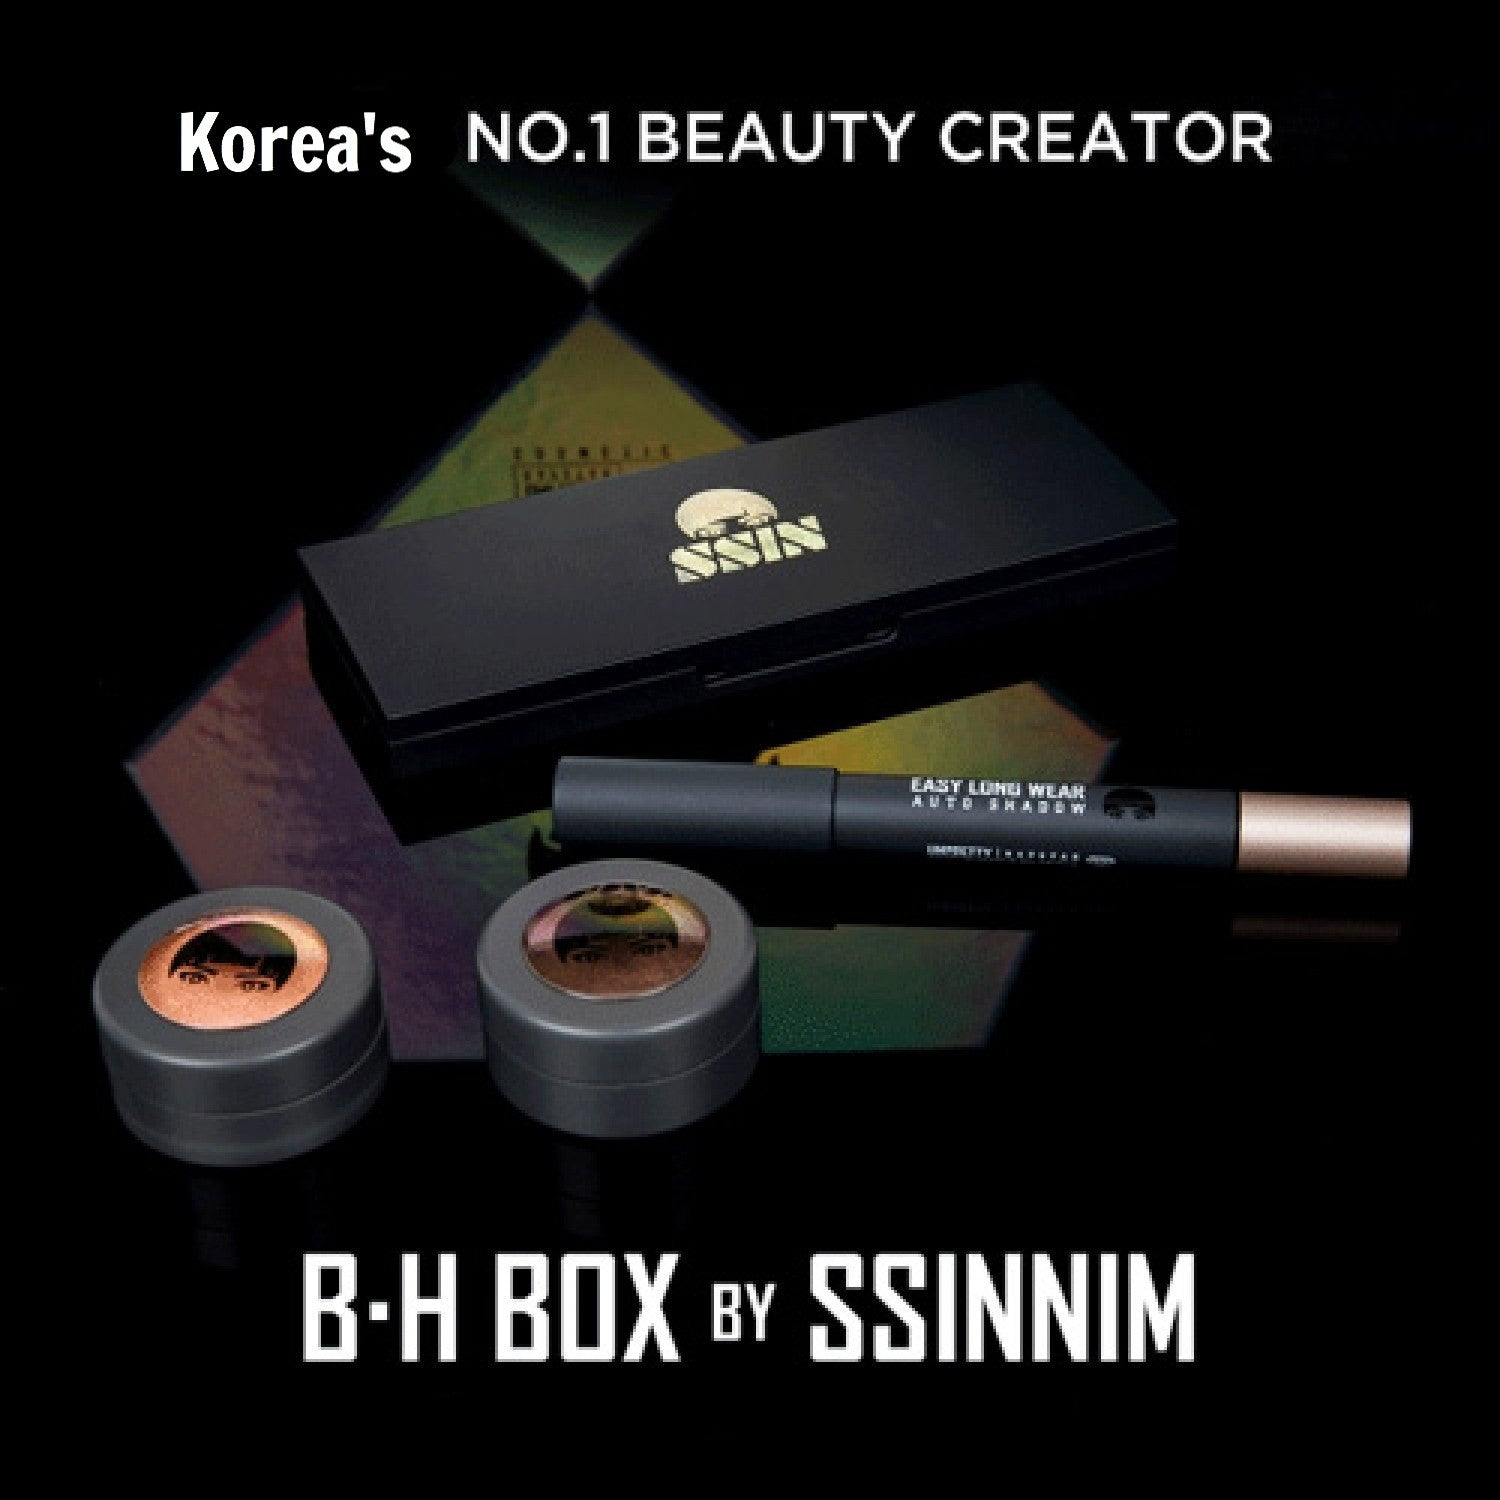 B-H Box by SSIN